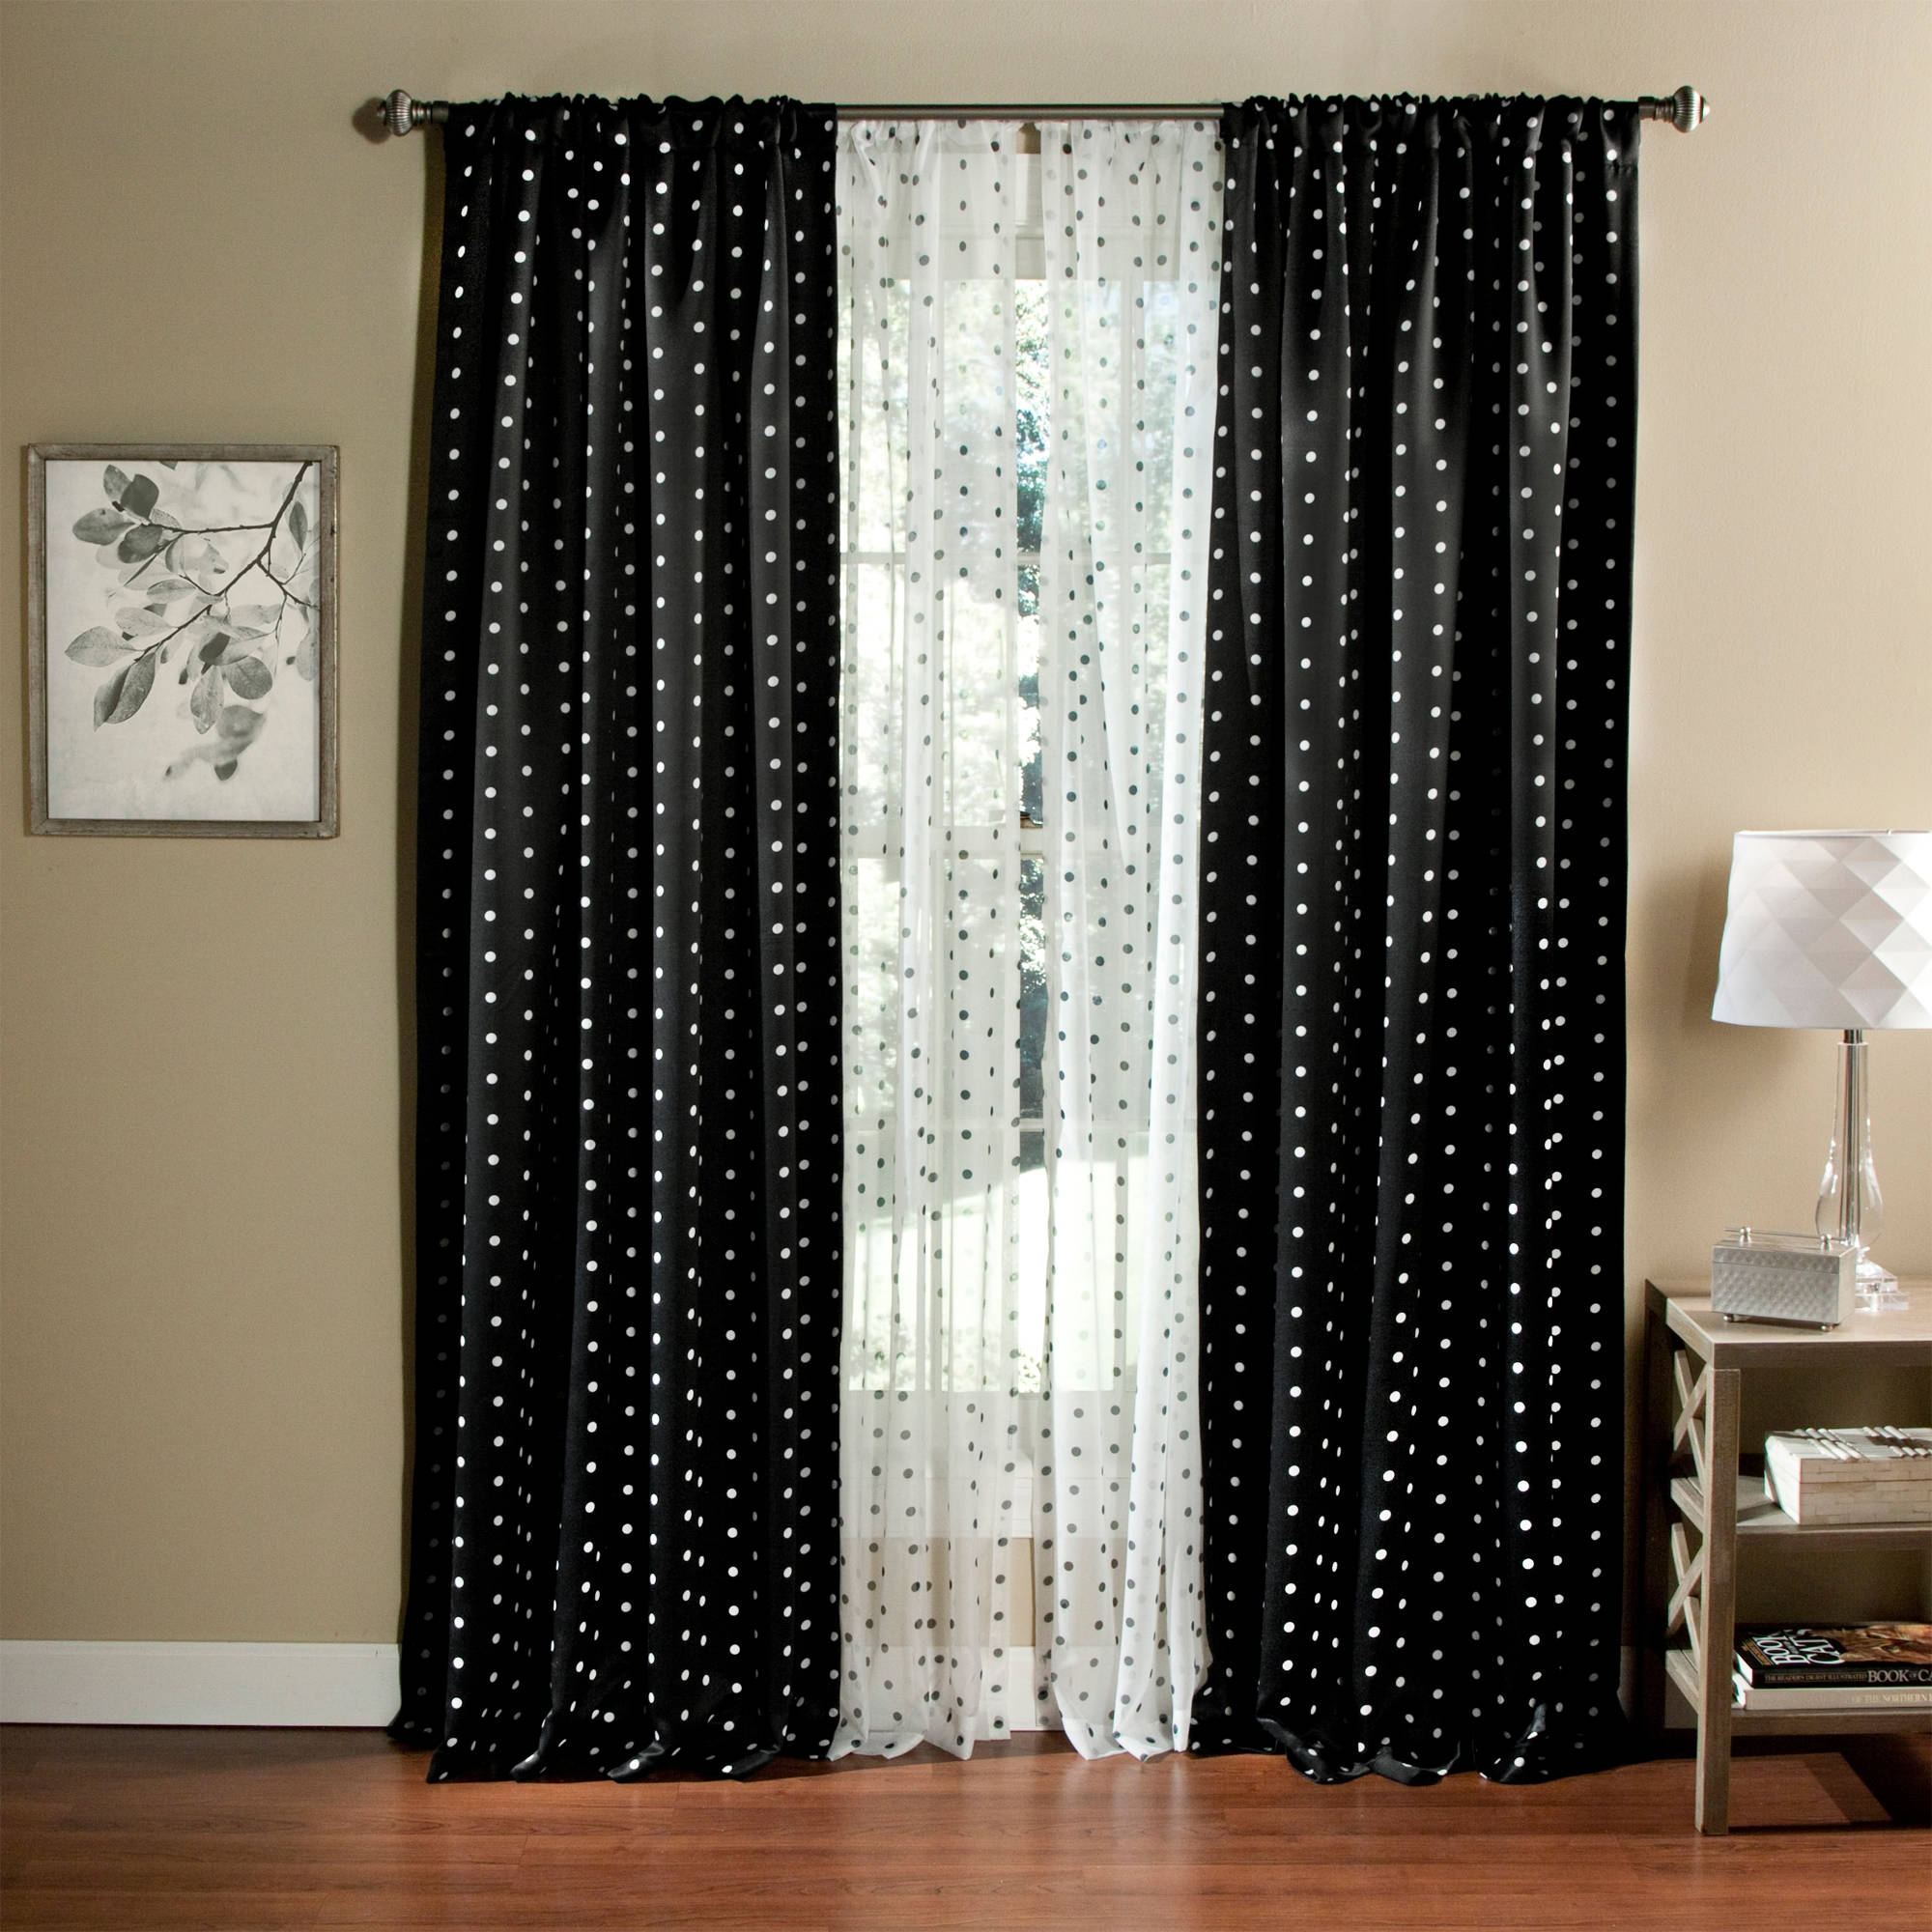 Featured Image of Navy And White Polka Dot Curtains